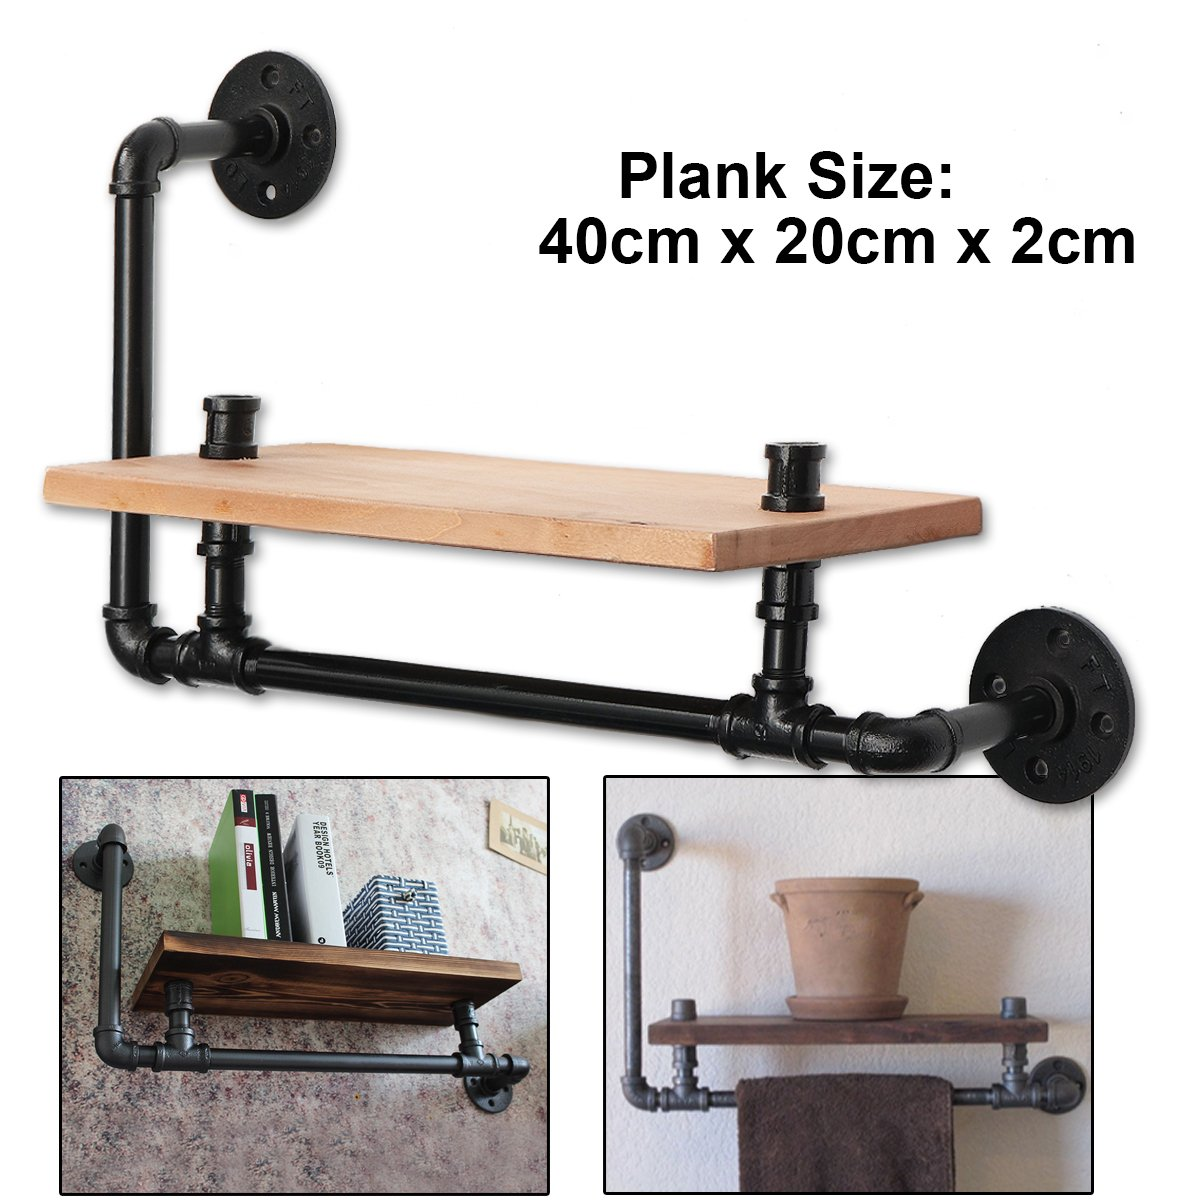 KINGSO Industrial Pipe Clothing Rack Wood Shelving shoes rack cloth hanger Wall Mount Pipe Hanger Rack Holder Clothes Storage Display Shelf